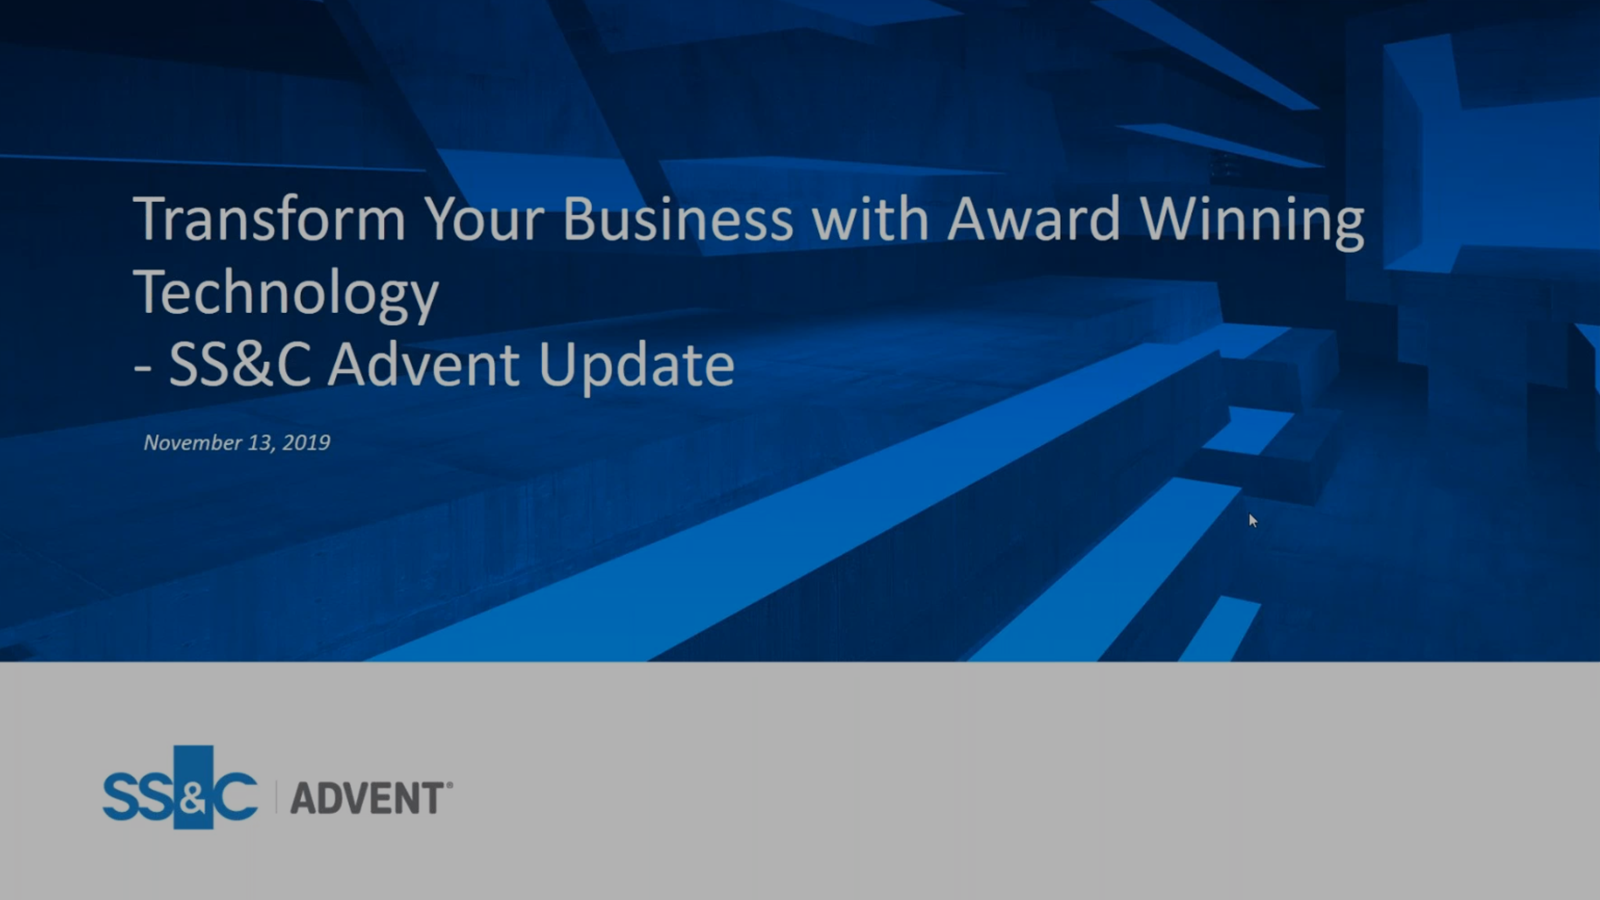 poster image for Transform Your Business with Award-Winning Technology